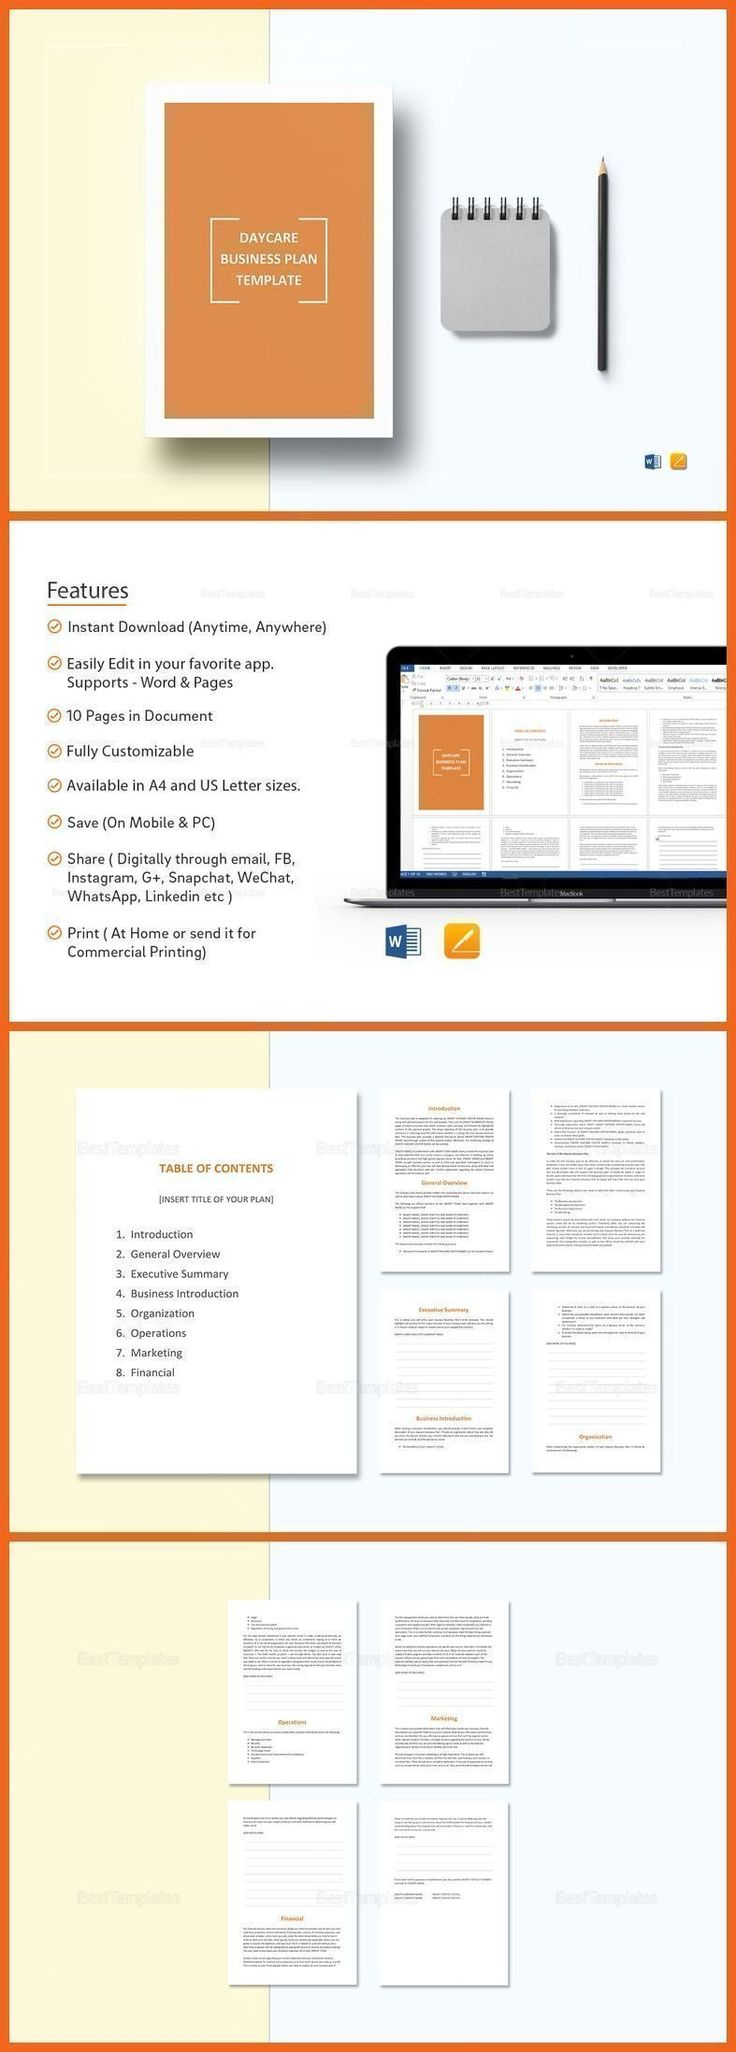 Daycare Business Plan Template - $12 Formats Included :MS Word, Pages File Size :8.27x11.69 Inchs, 8.5x11 Inchs Pages :10 #daycarebusinessplan